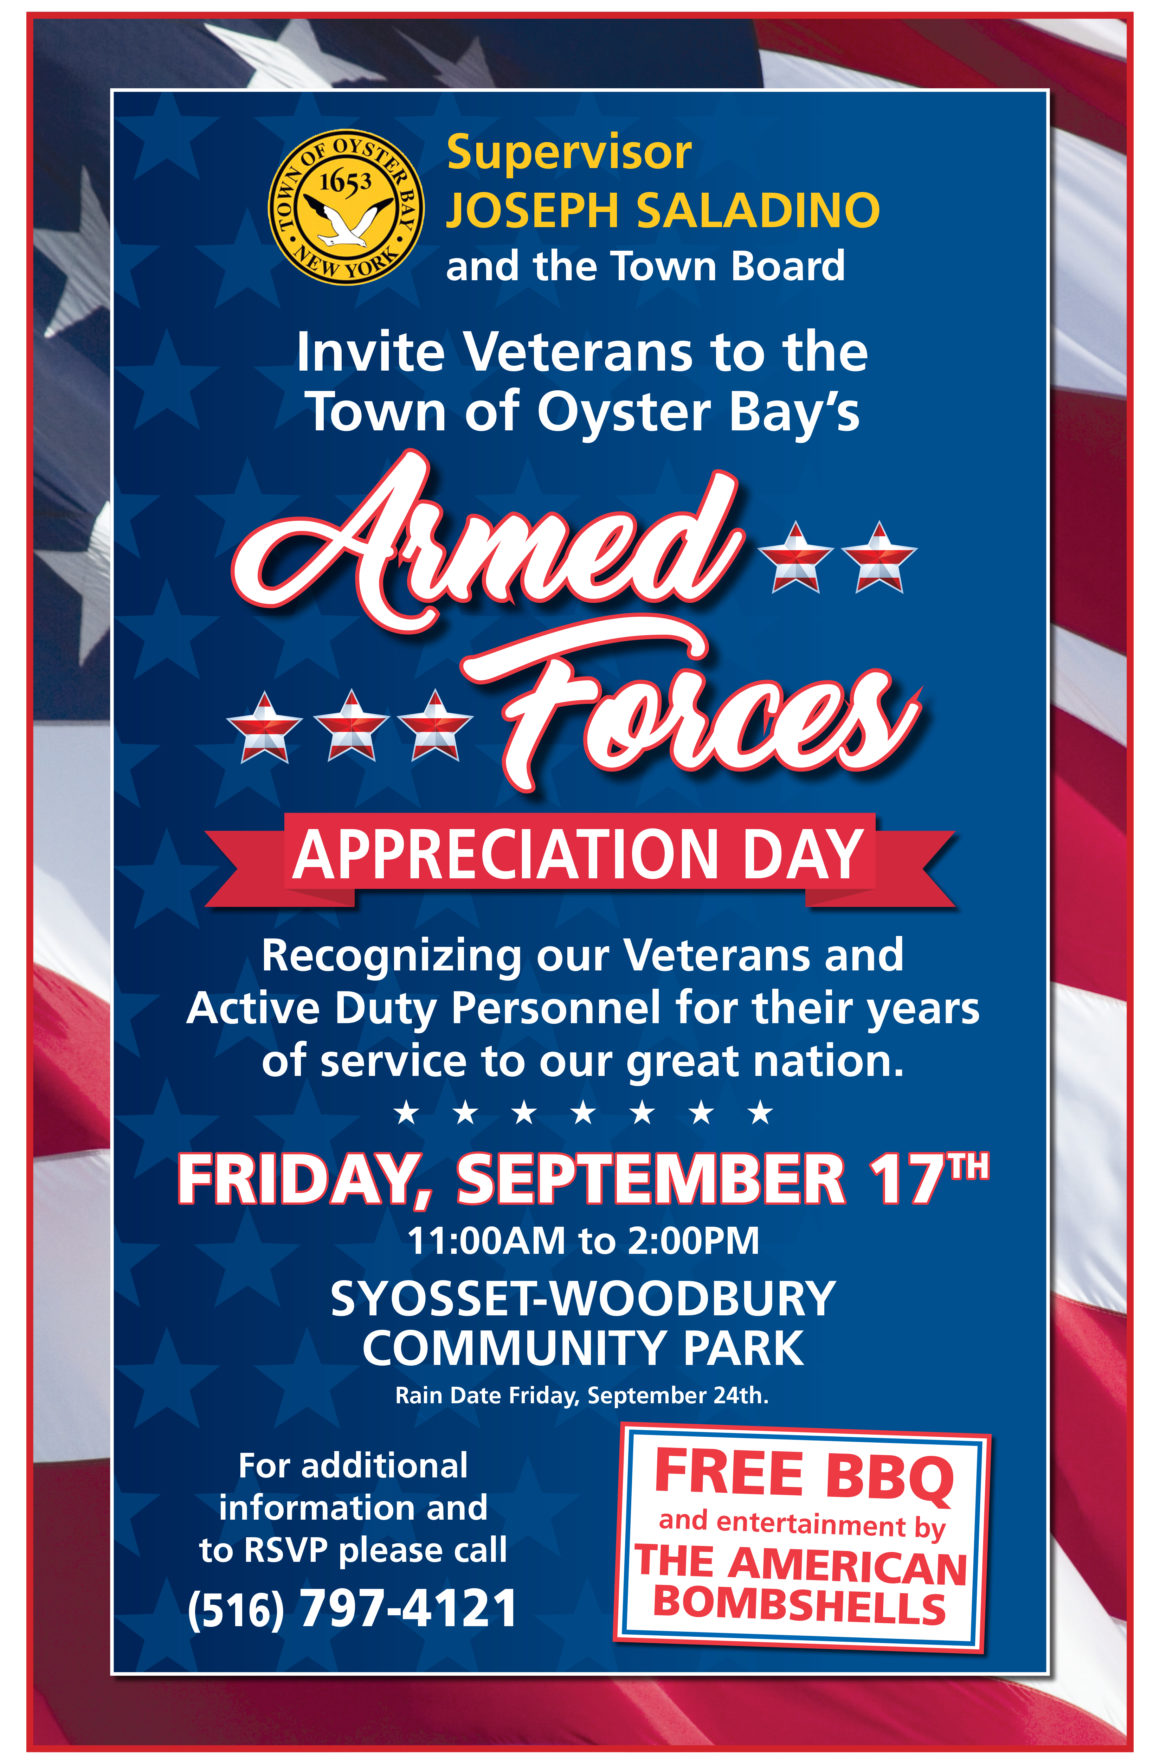 Town to Host Armed Forces Appreciation Day 2021 on Friday, September 17th